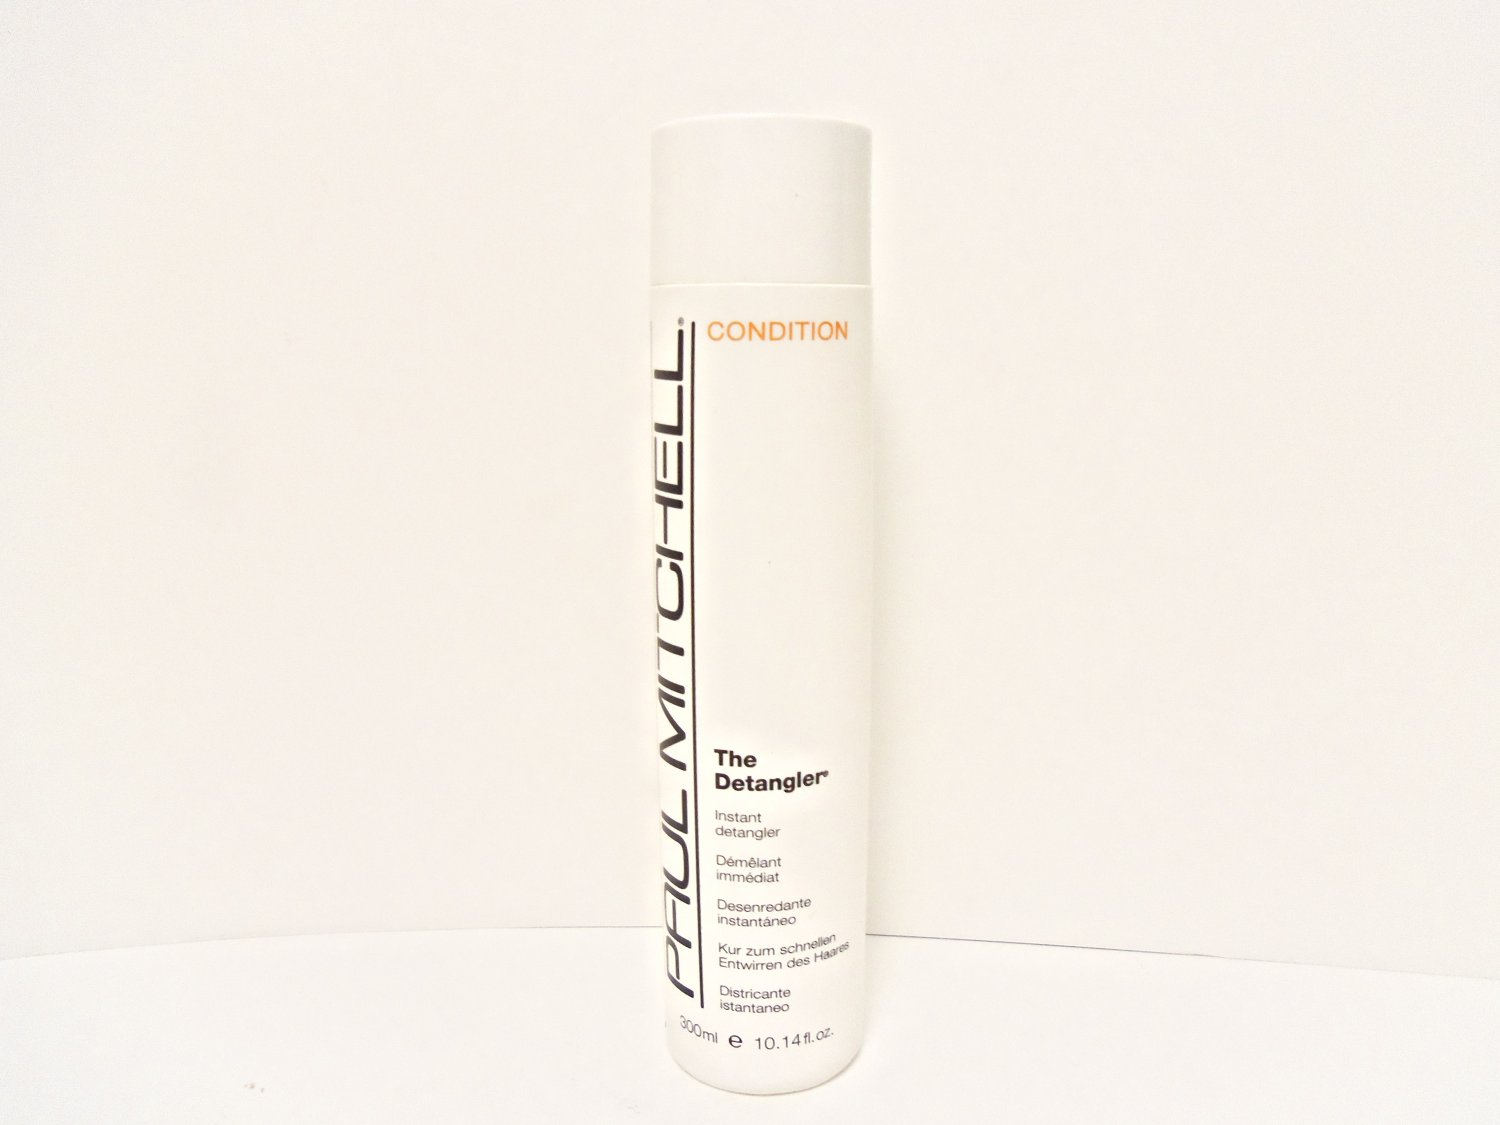 Paul Mitchell The Detangler 10.14fl oz